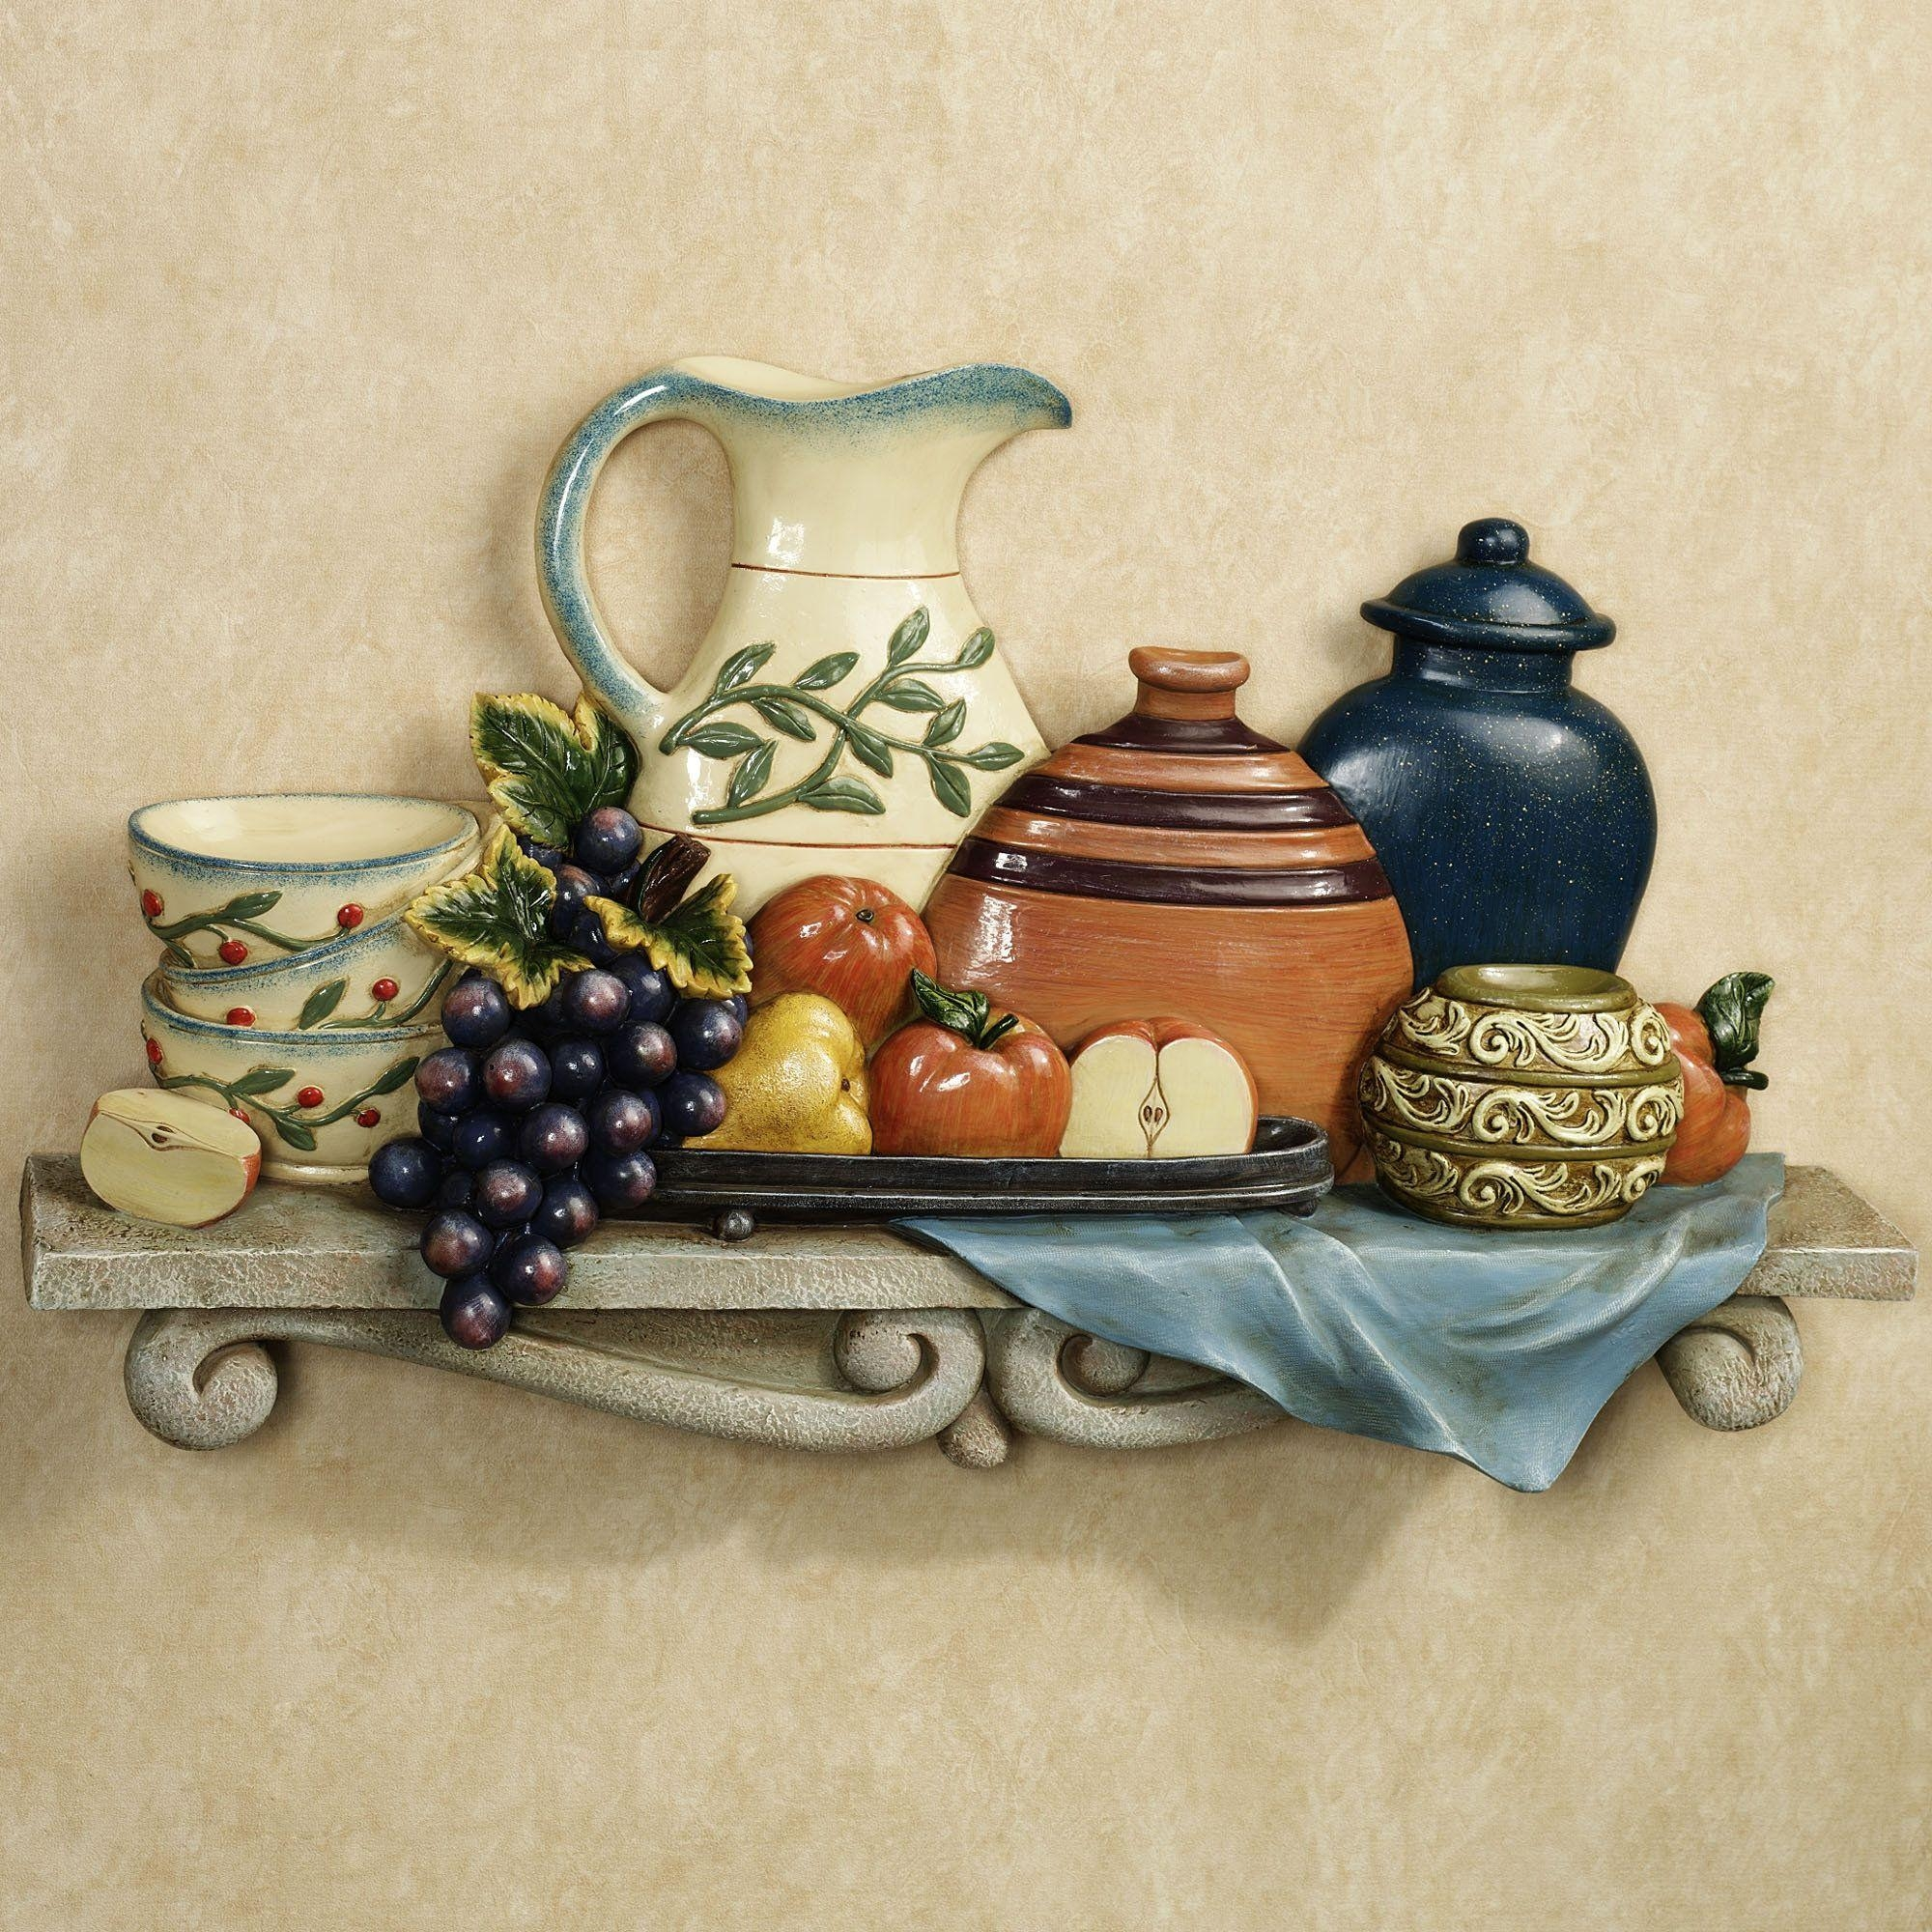 Tuscan Kitchen Wall Decor With Shelf – The Simple Ways For With Regard To Italian Wall Art For Kitchen (Image 16 of 20)